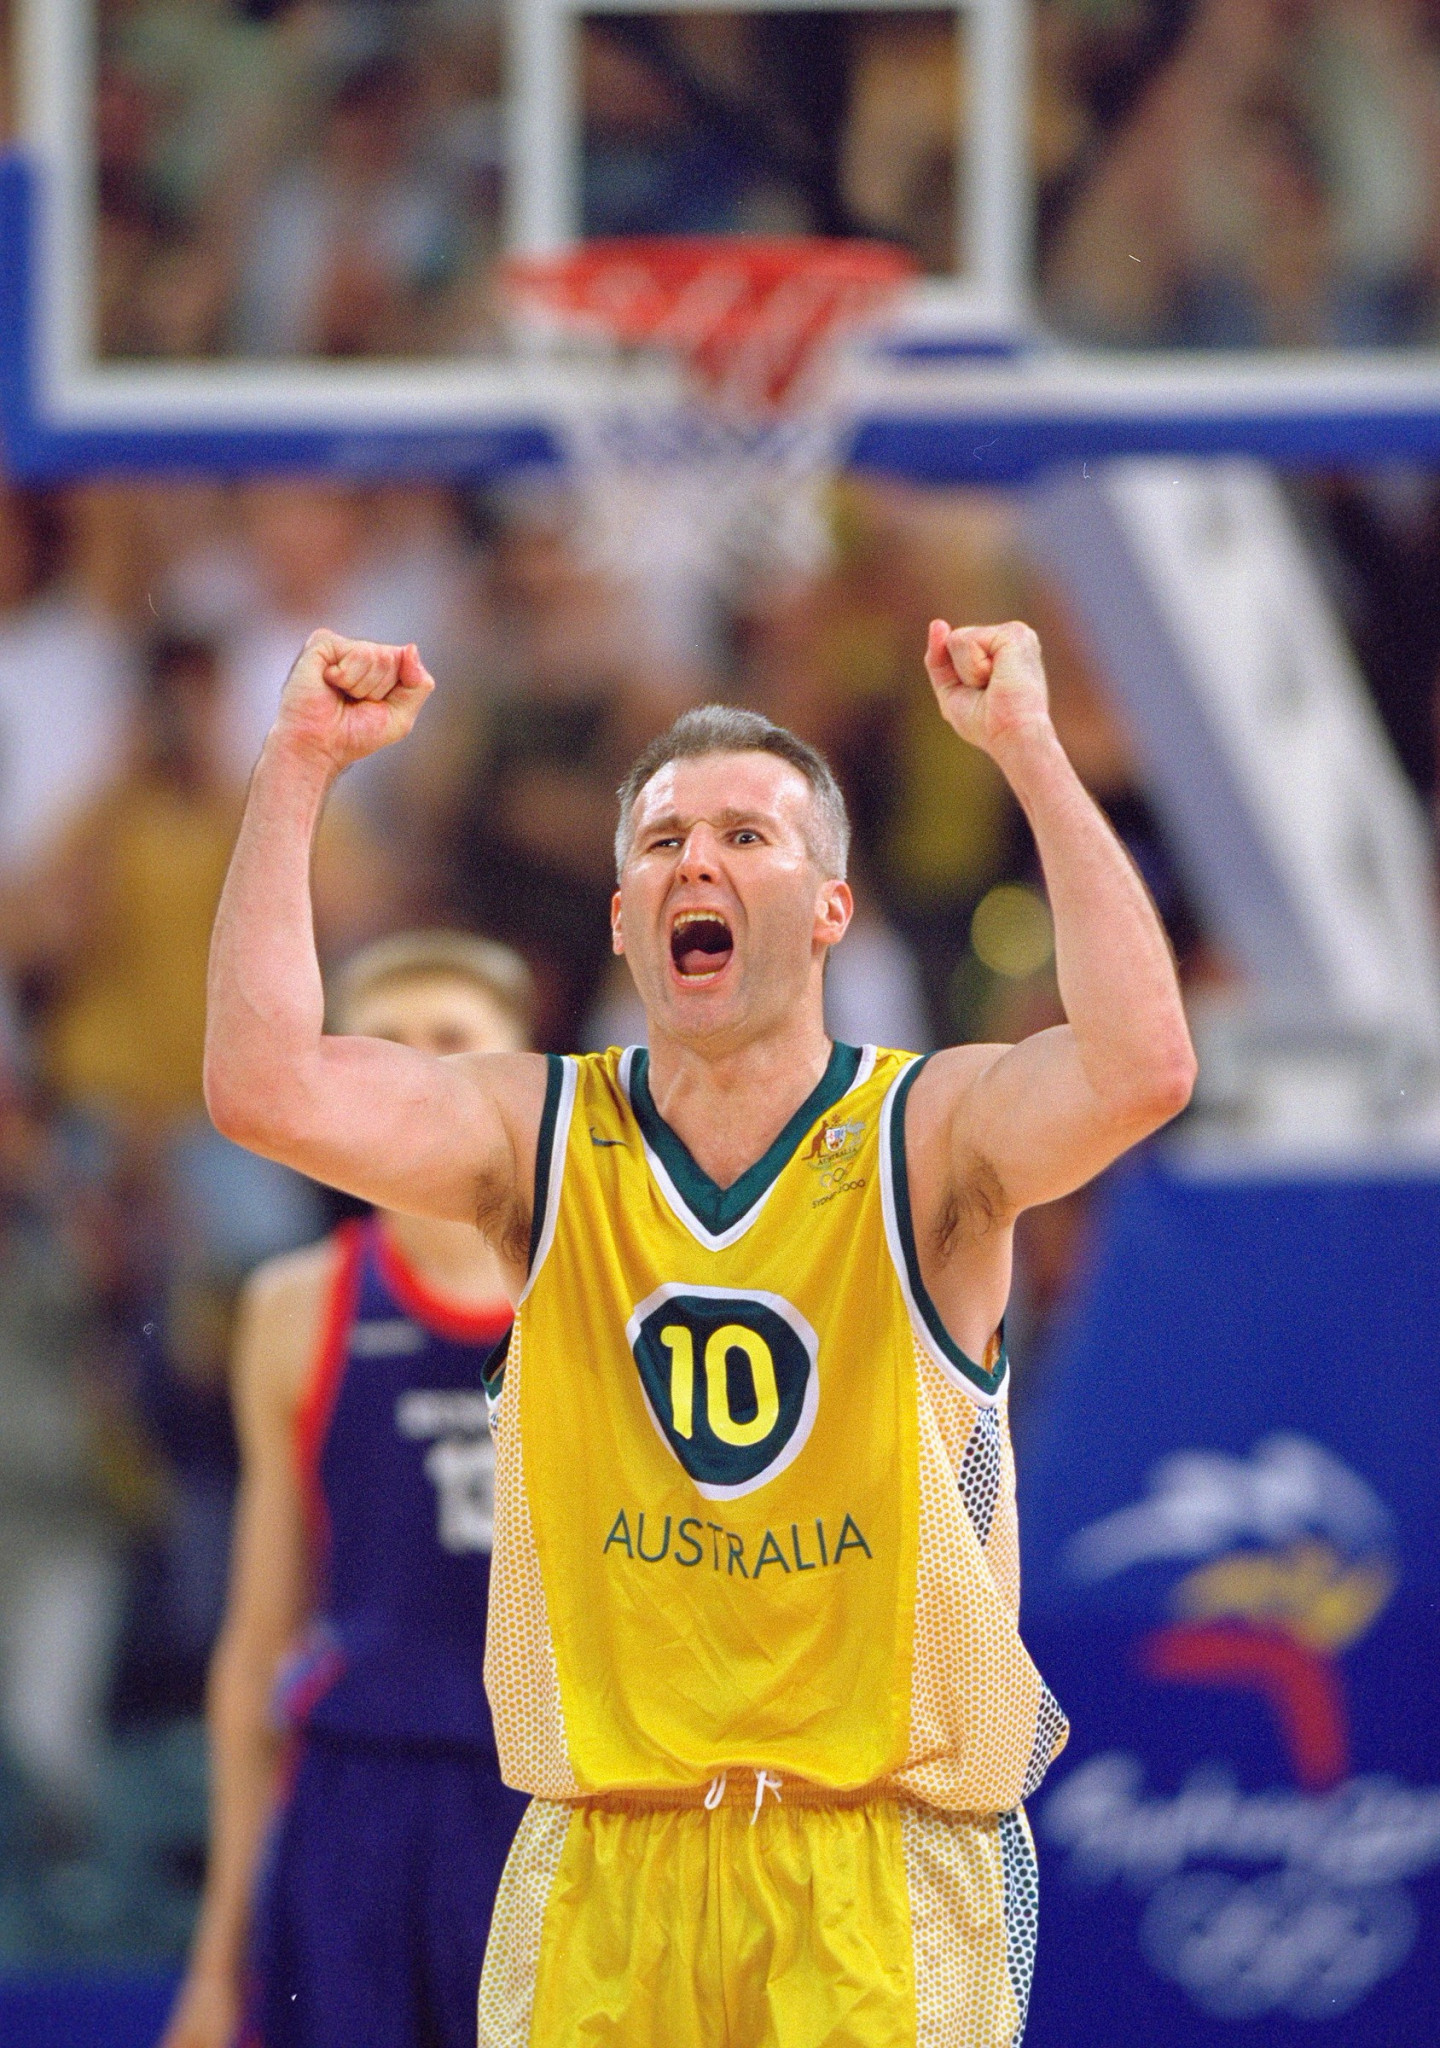 Andrew Gaze playing in his fifth Olympics at Sydney 2000 ©Getty Images